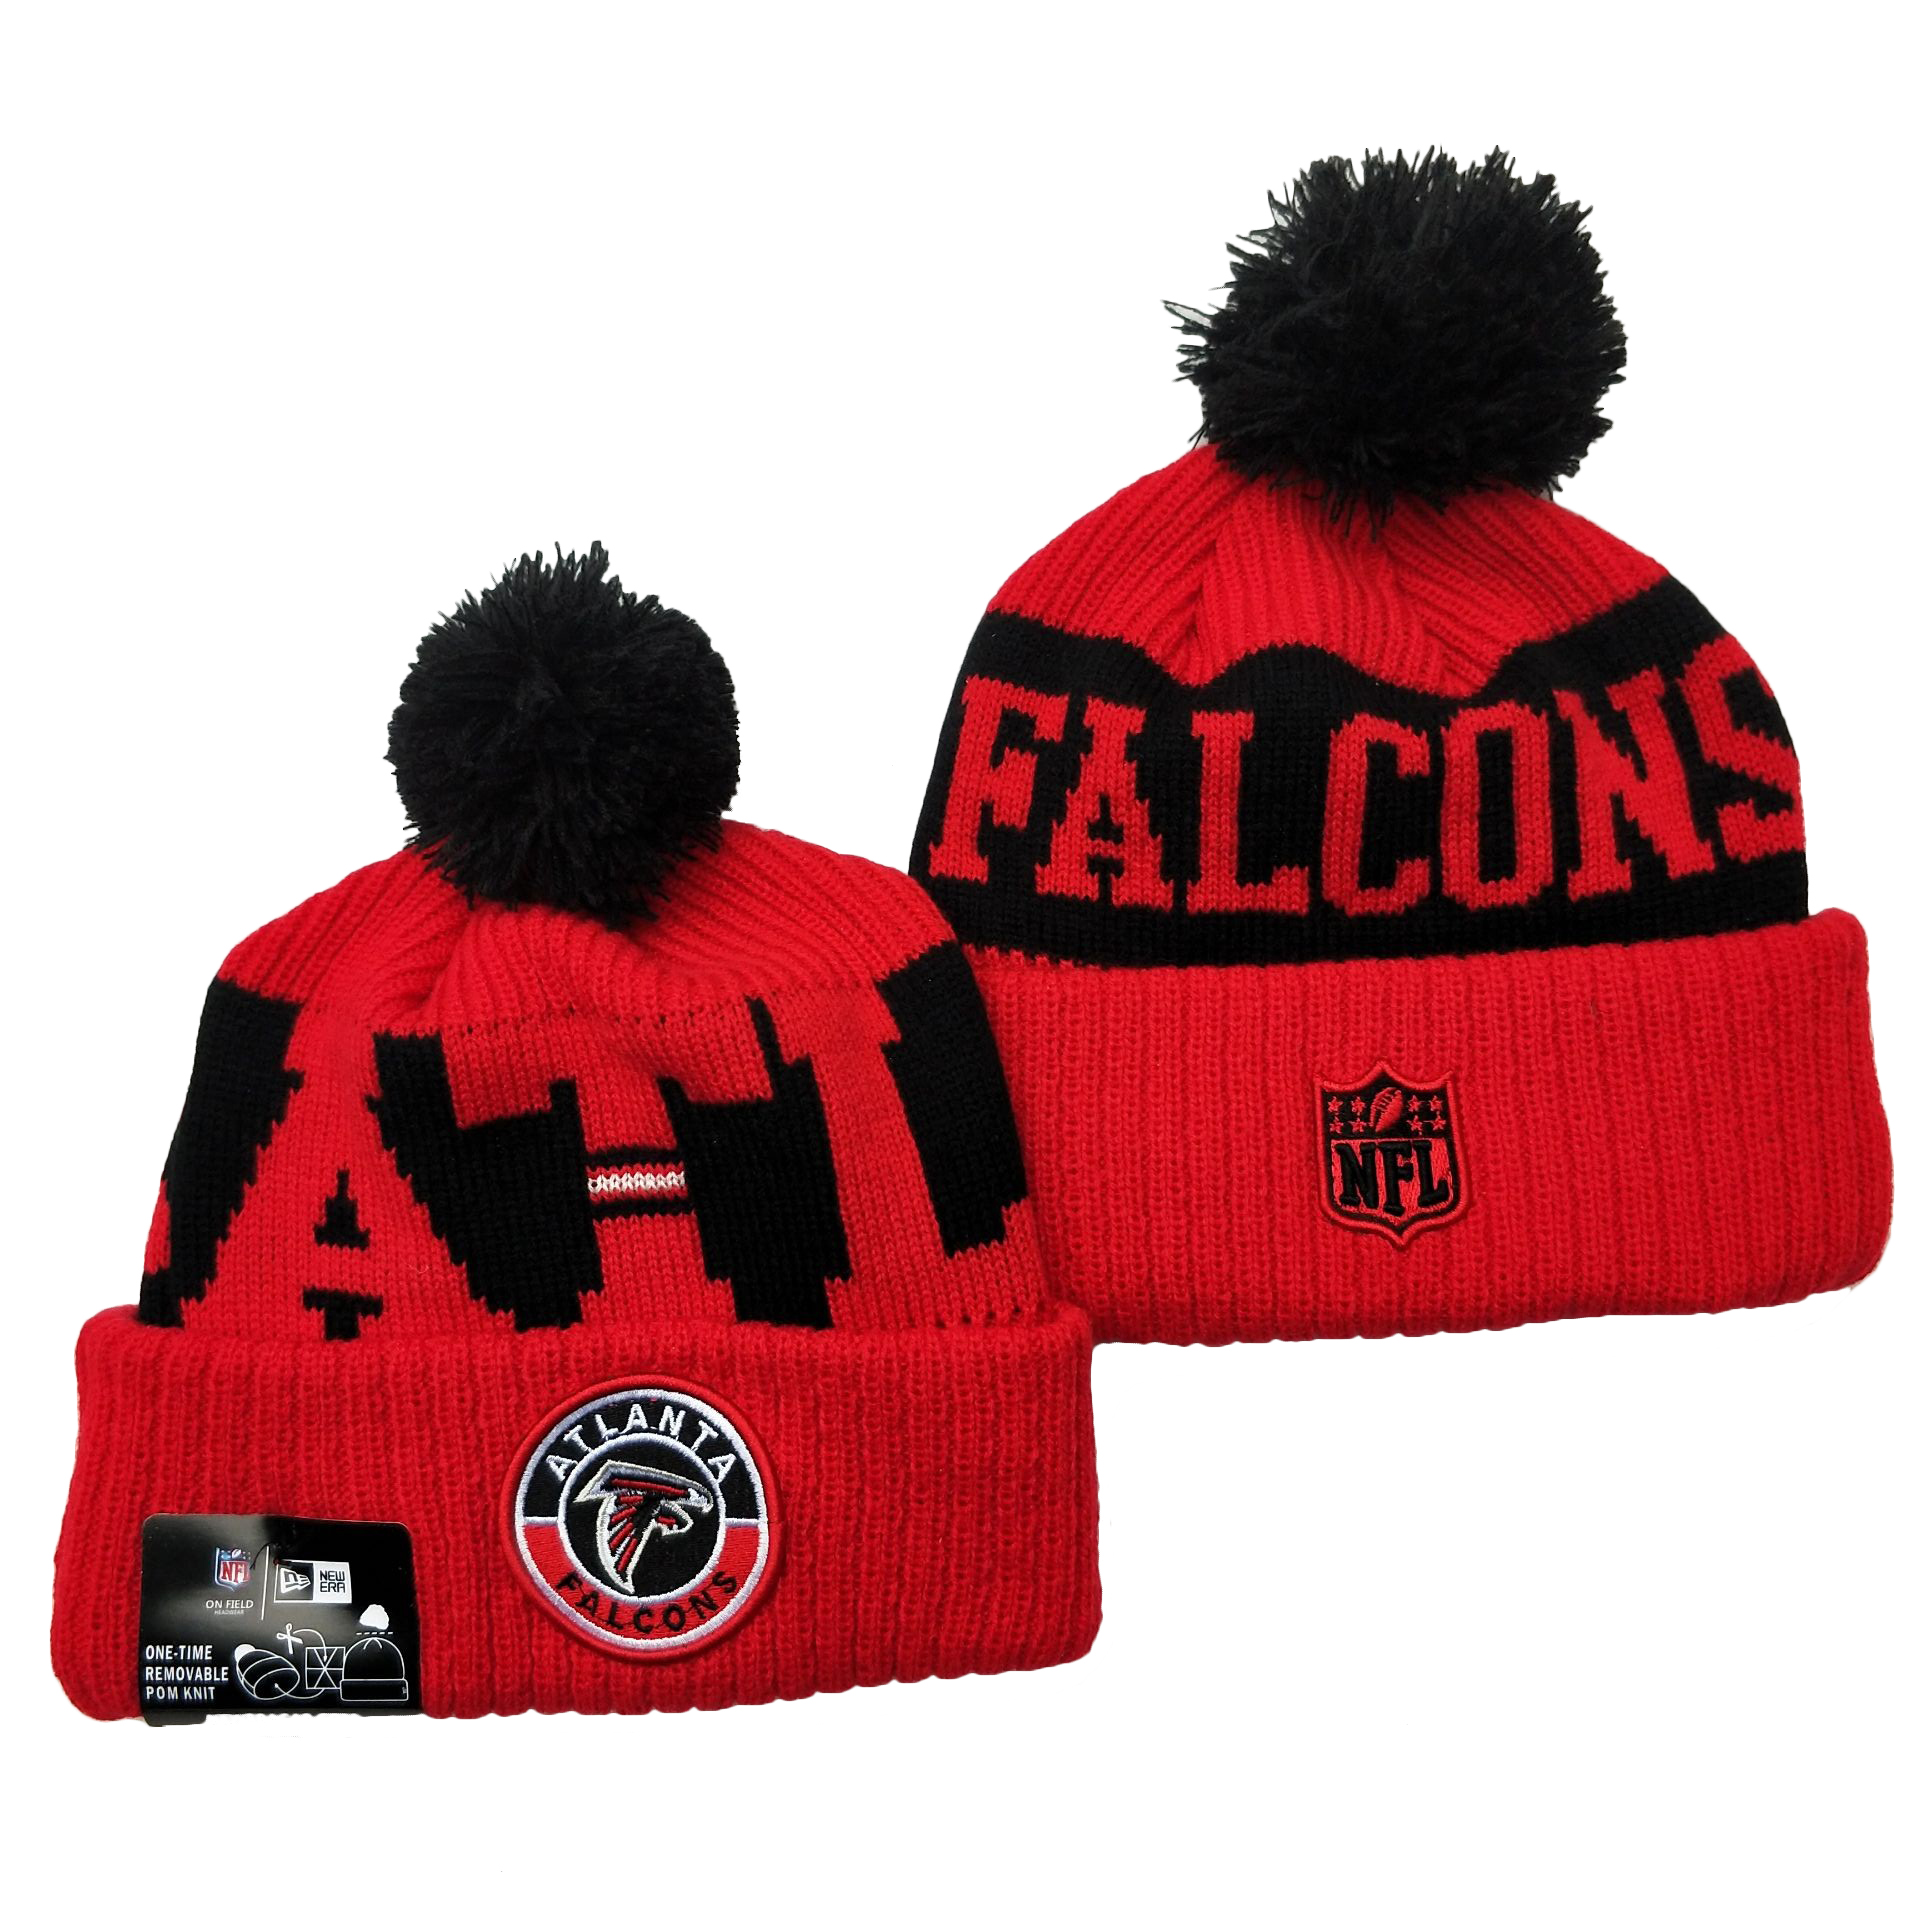 Atlanta Falcons Knit Hats 057